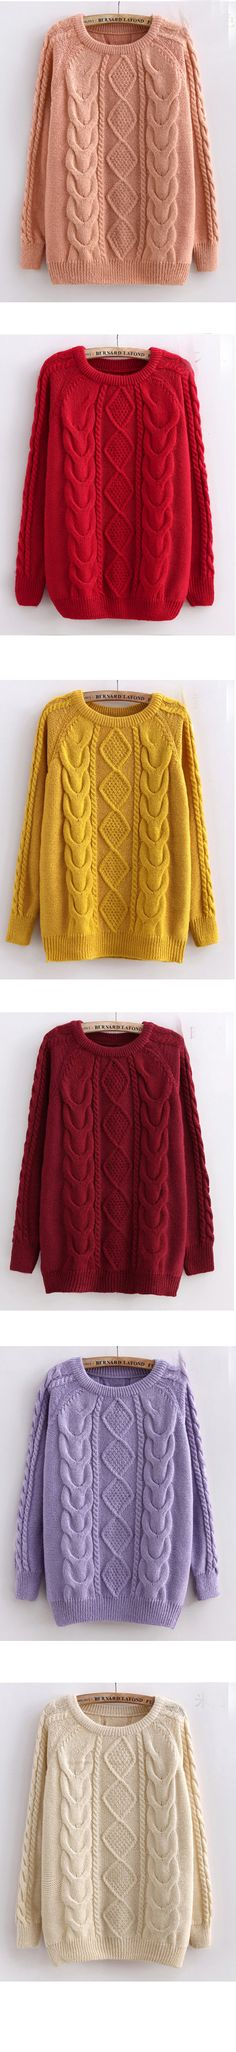 #Sweater # cabled sweater  More at: http://livinglearningandloving.com/things-we-like-and-love/